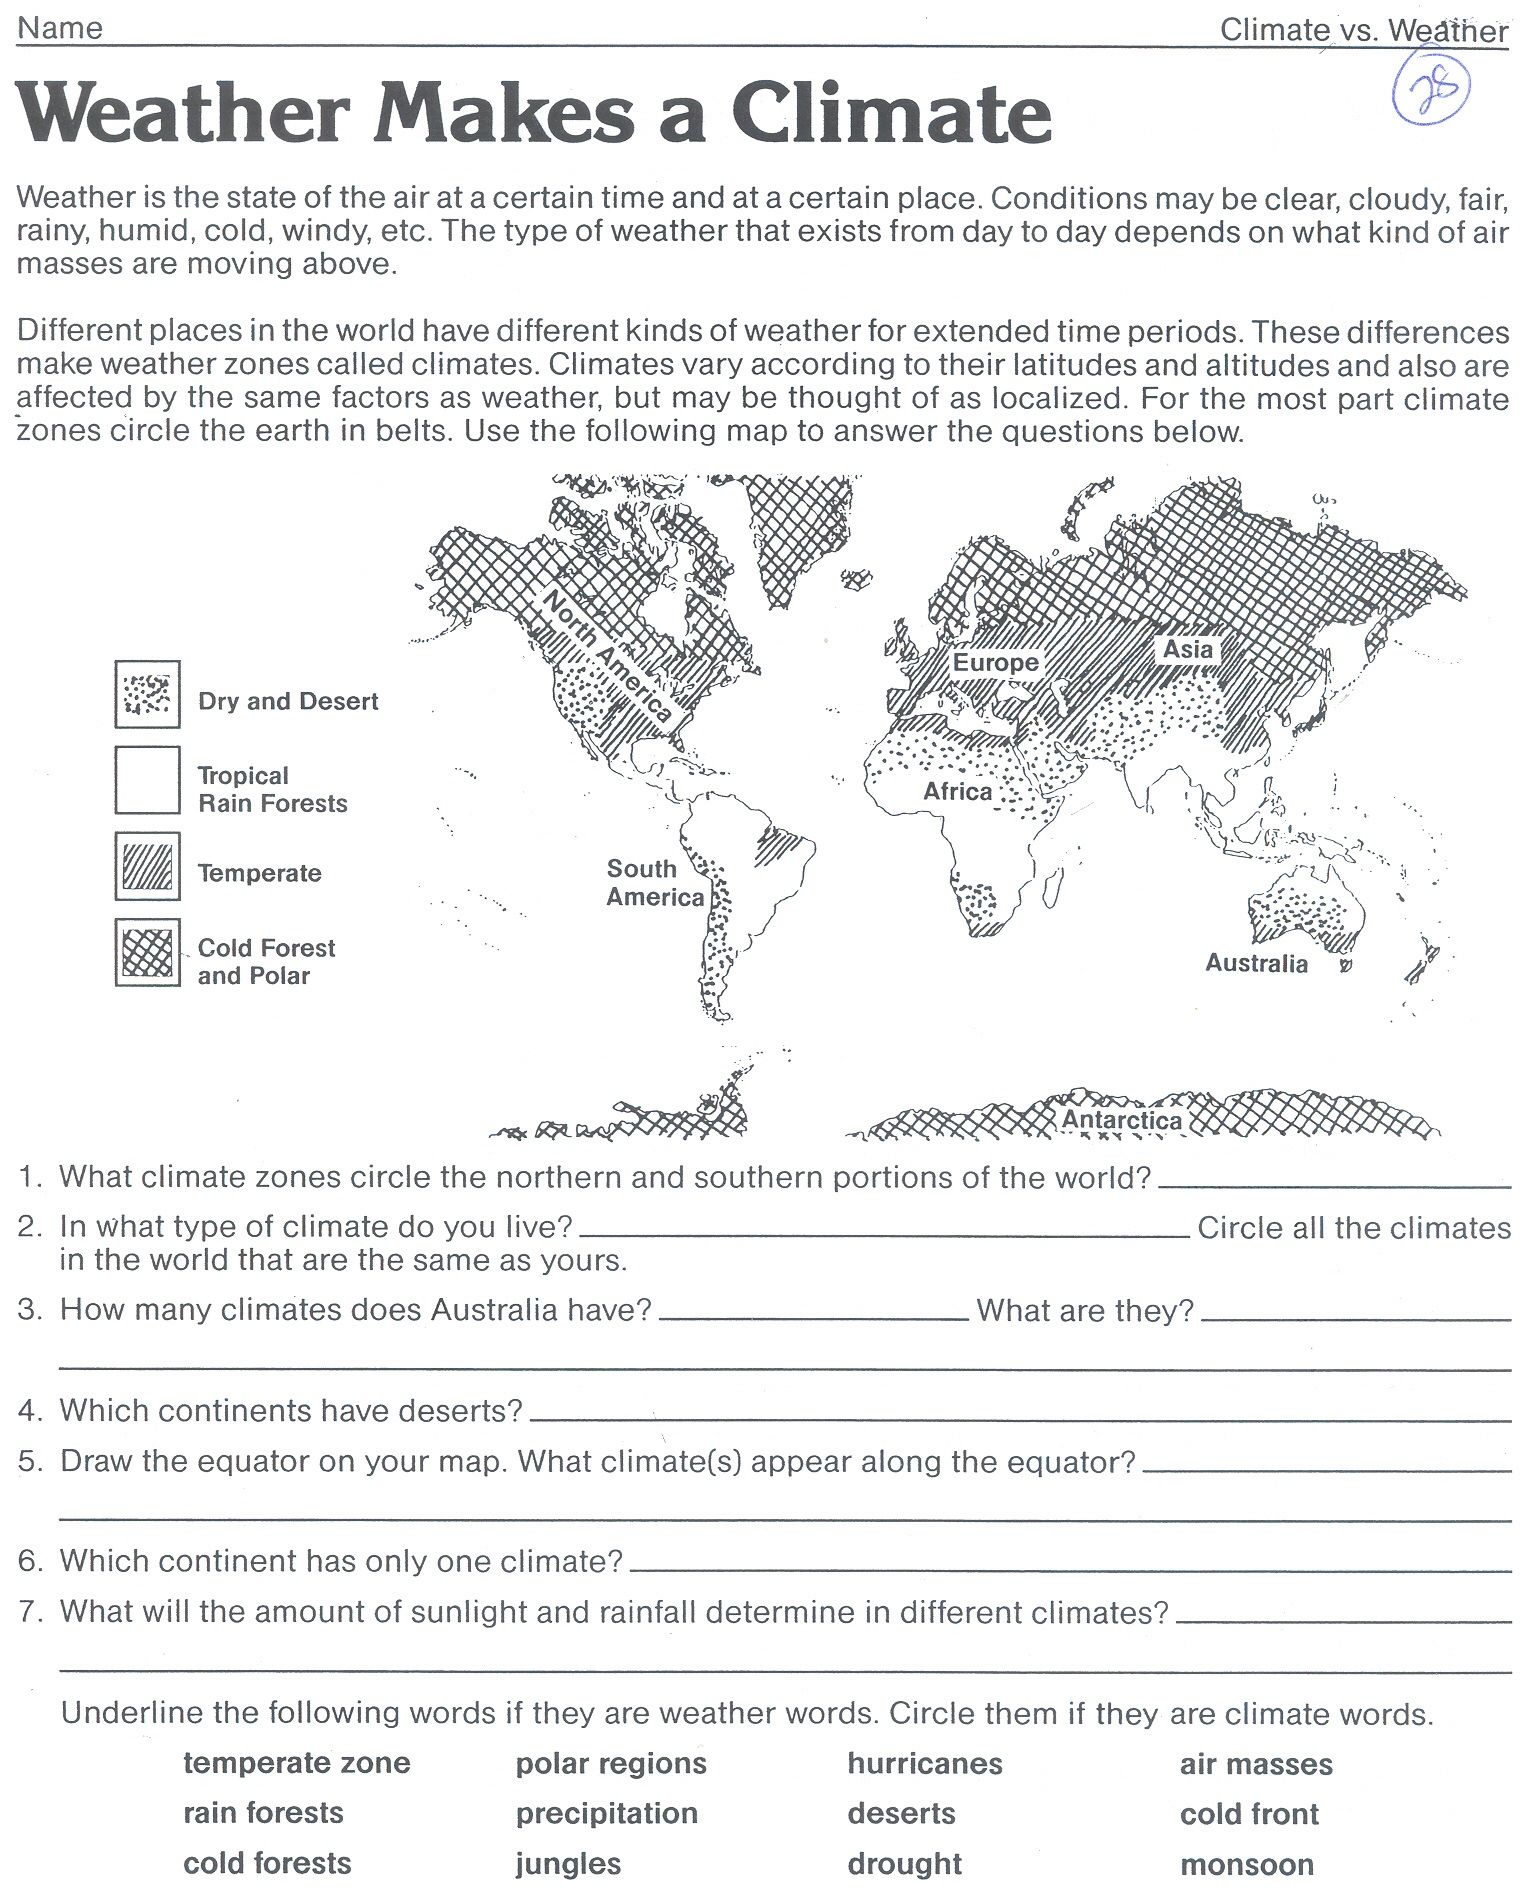 Worksheets 8th Grade Geography Worksheets weather makes a climate worksheet science pinterest worksheets worksheet